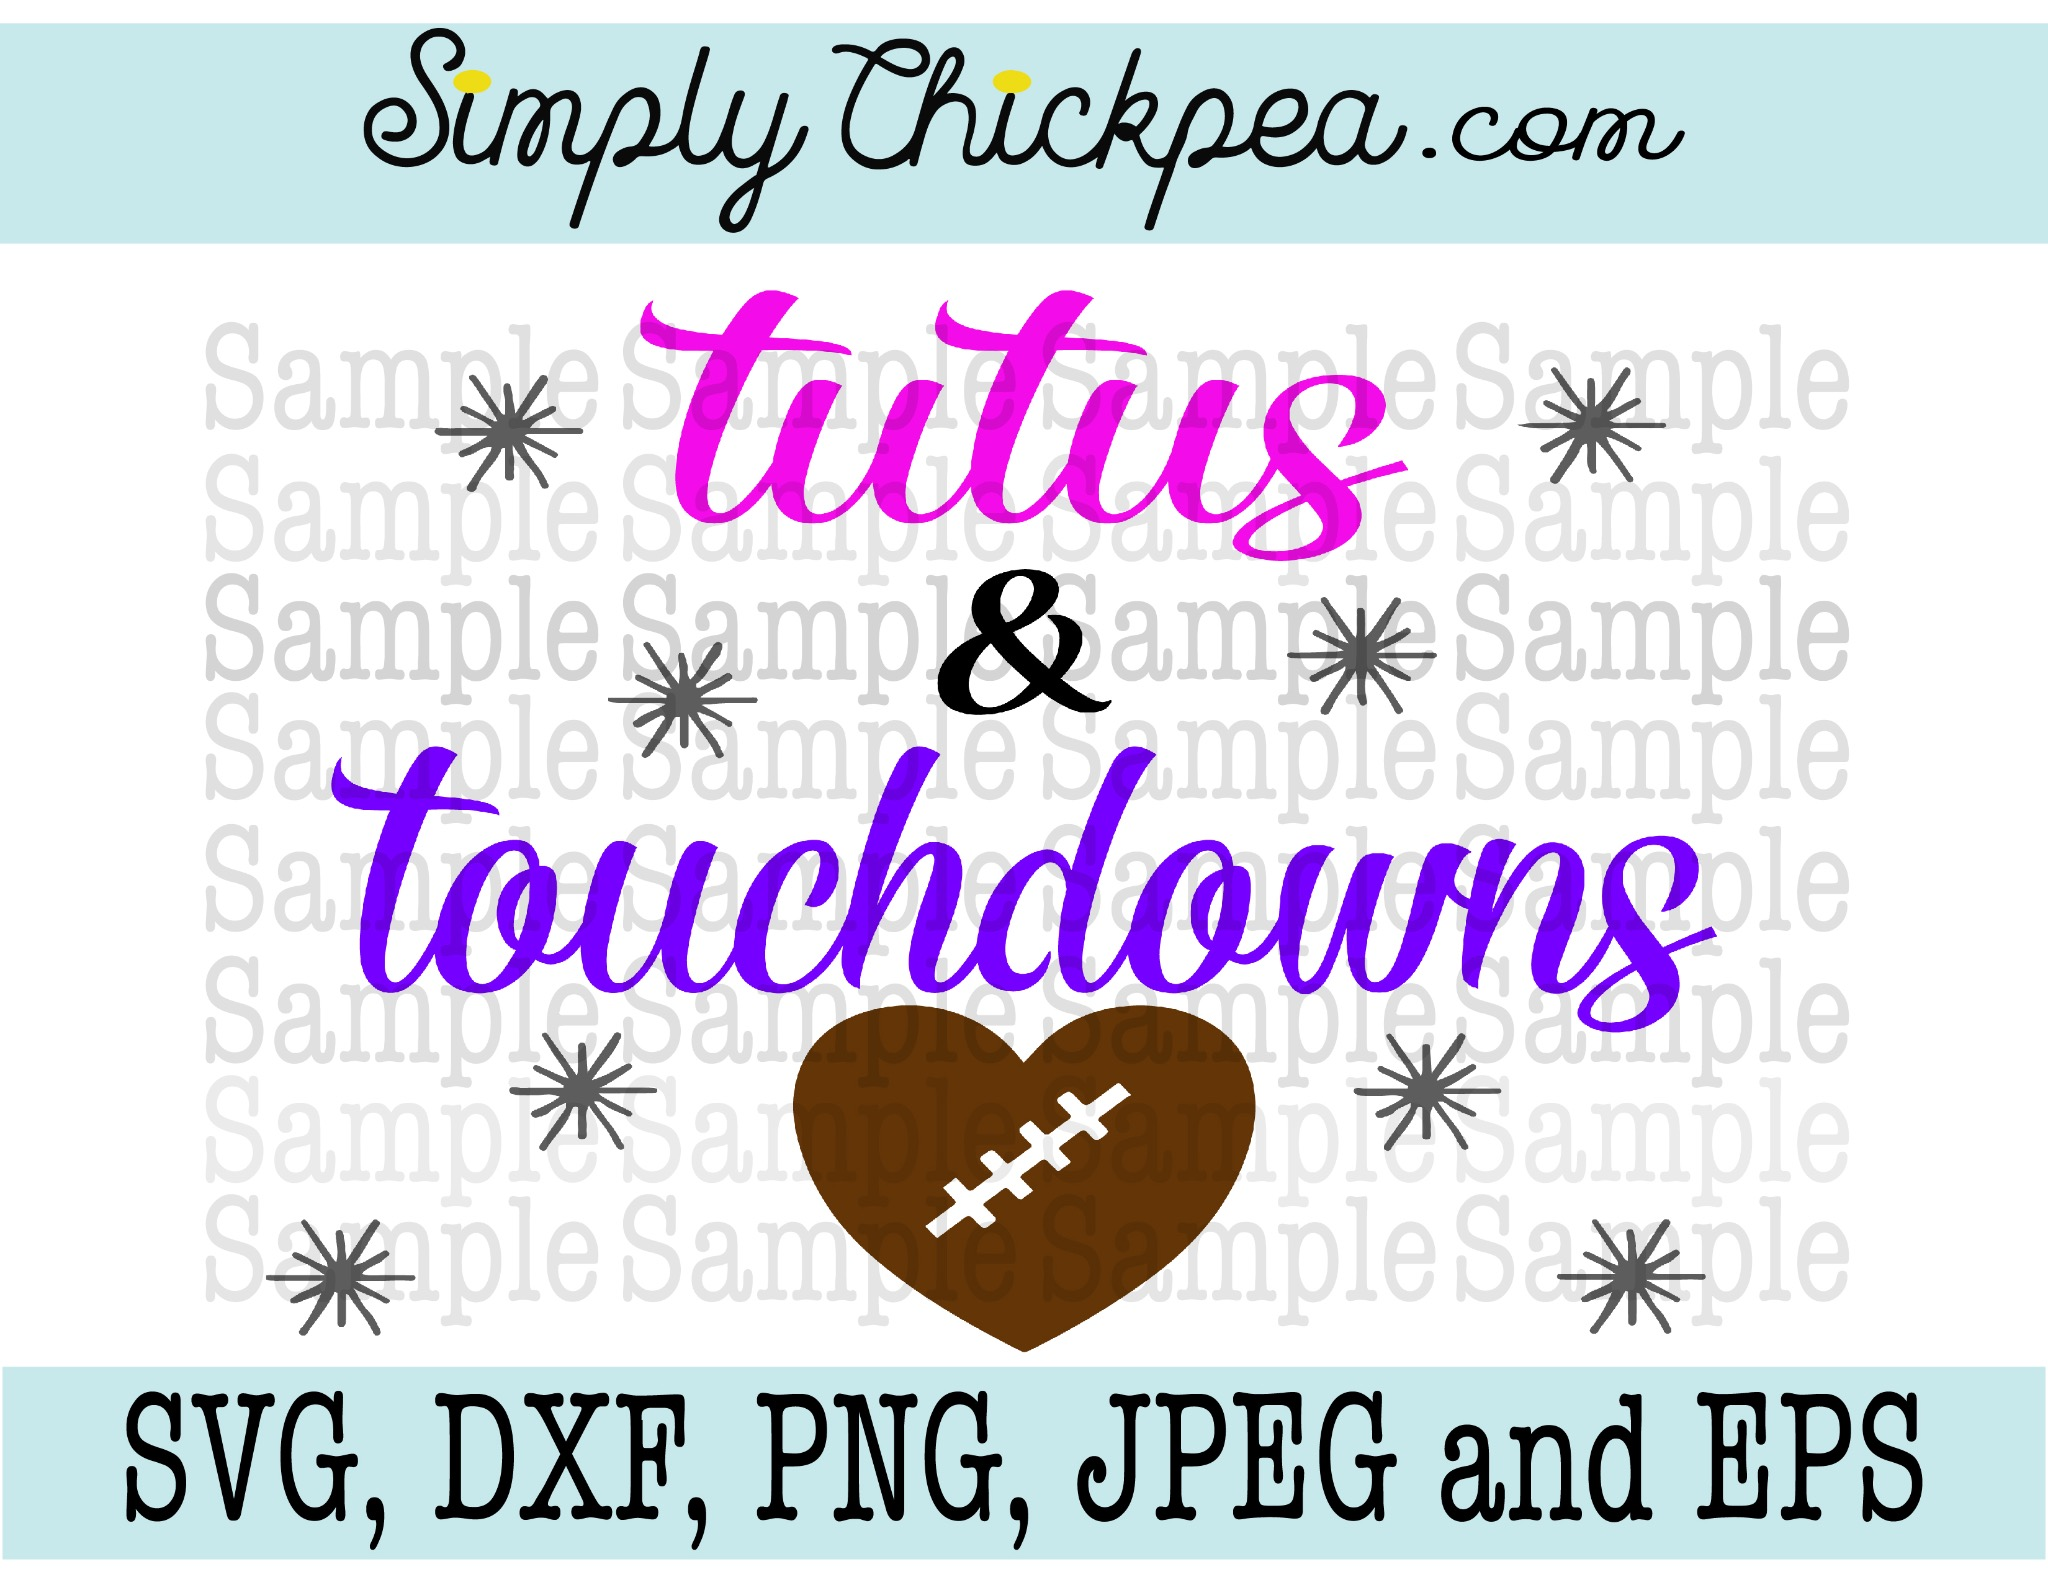 Svg Dxf Png Cutting File Jpeg And Eps Tutus And Touchdowns Football Design Simply Chickpea Designs